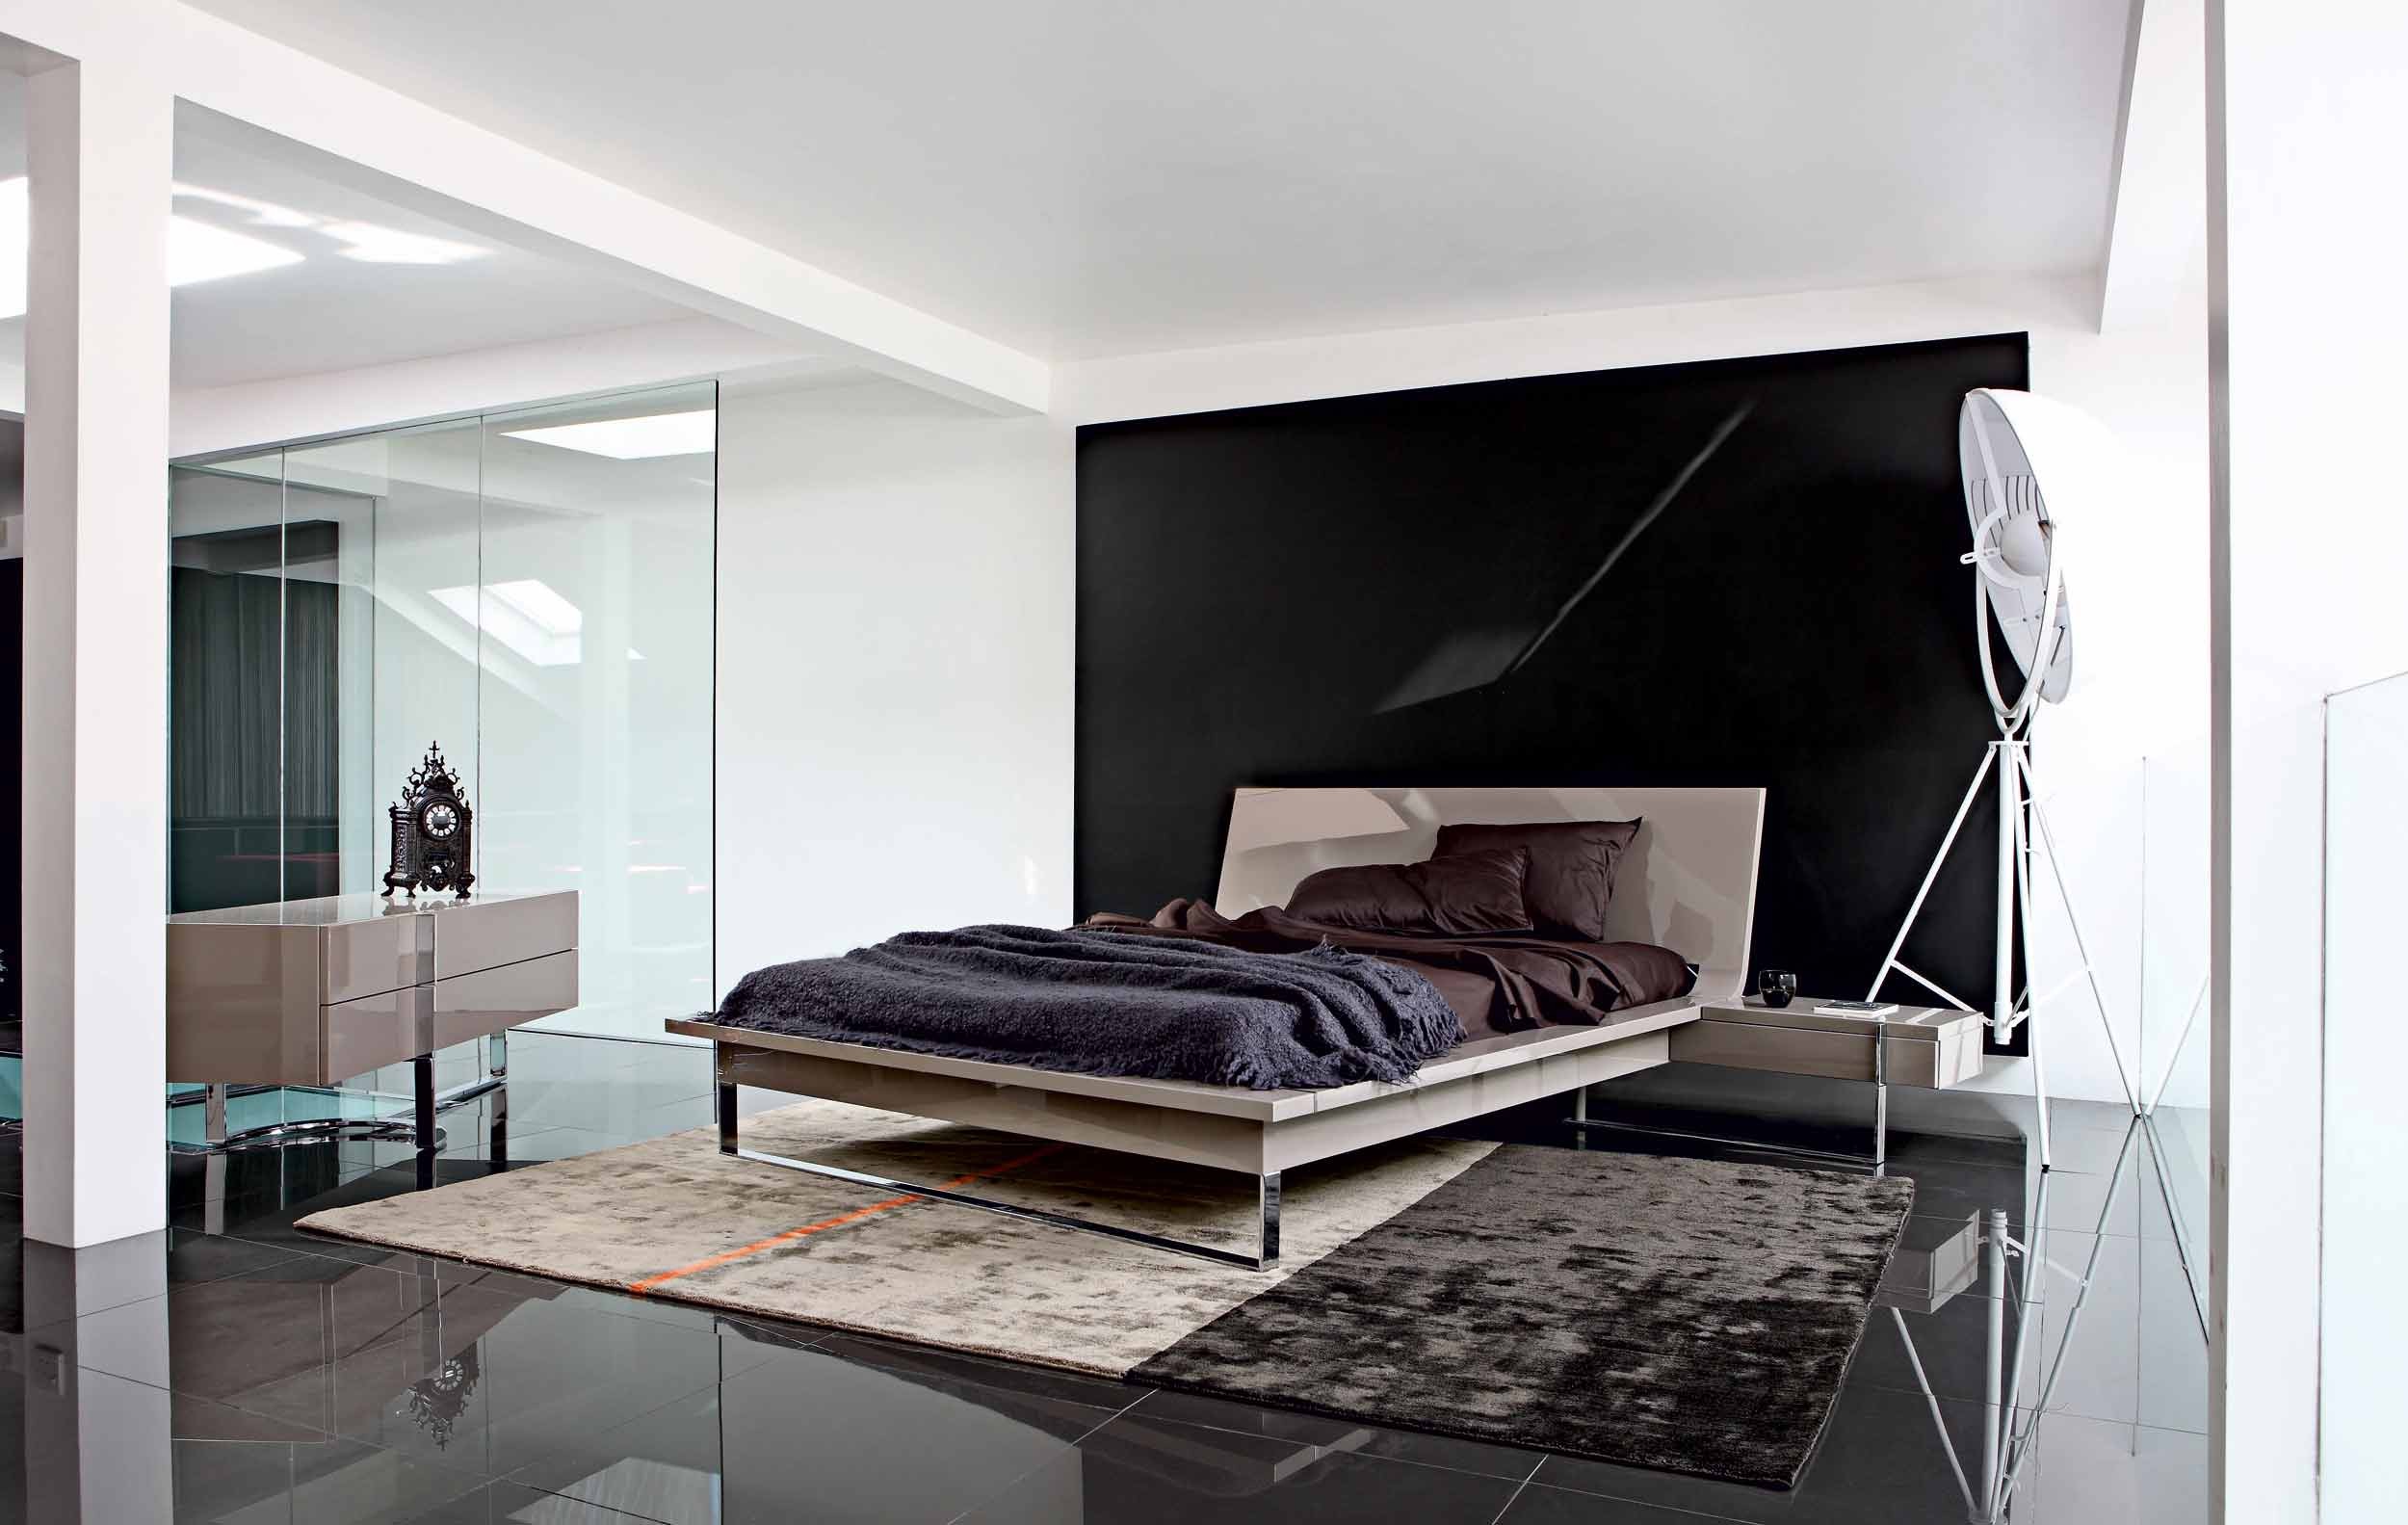 Minimalist bedroom interior design ideas for Minimalist bedroom design